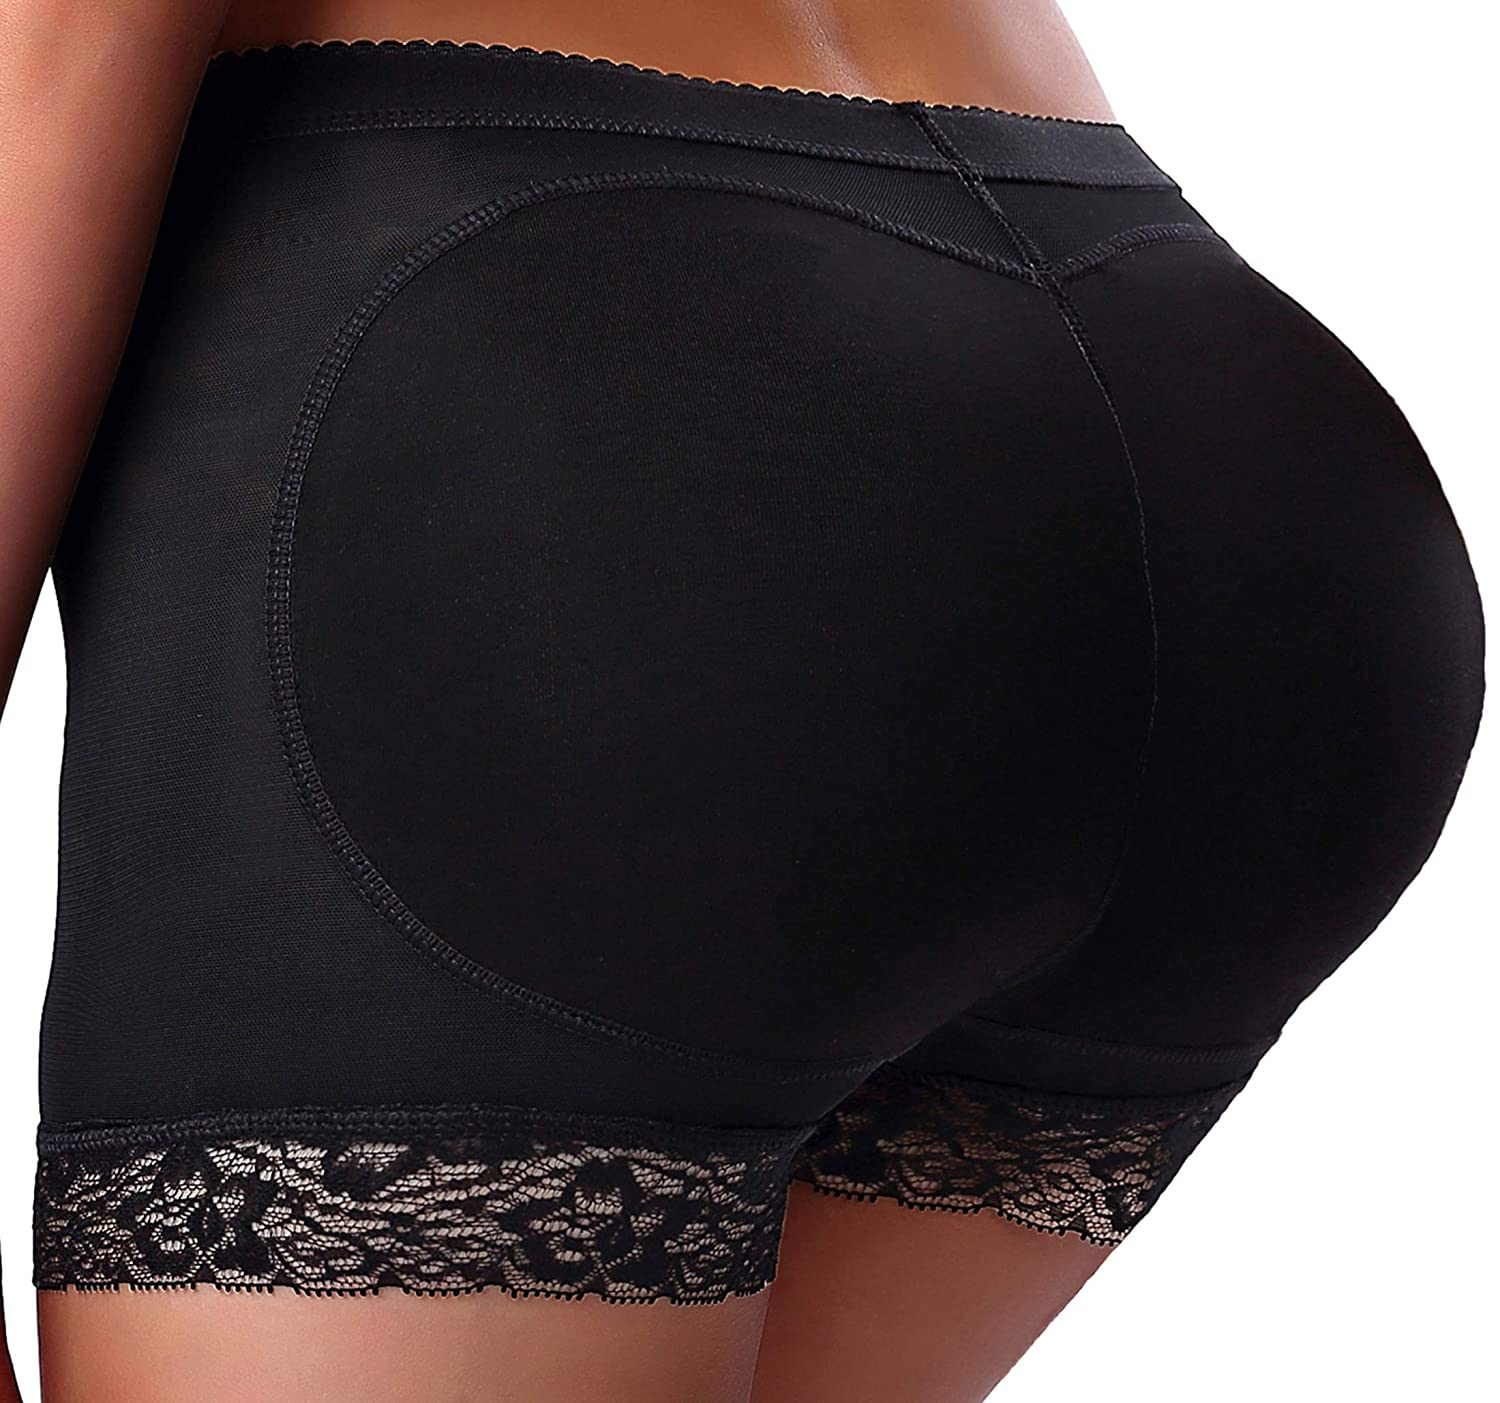 CeesyJuly Womens Lace Padded Butt Lifter Boy Shorts Hip Enhancer Shaper Panties